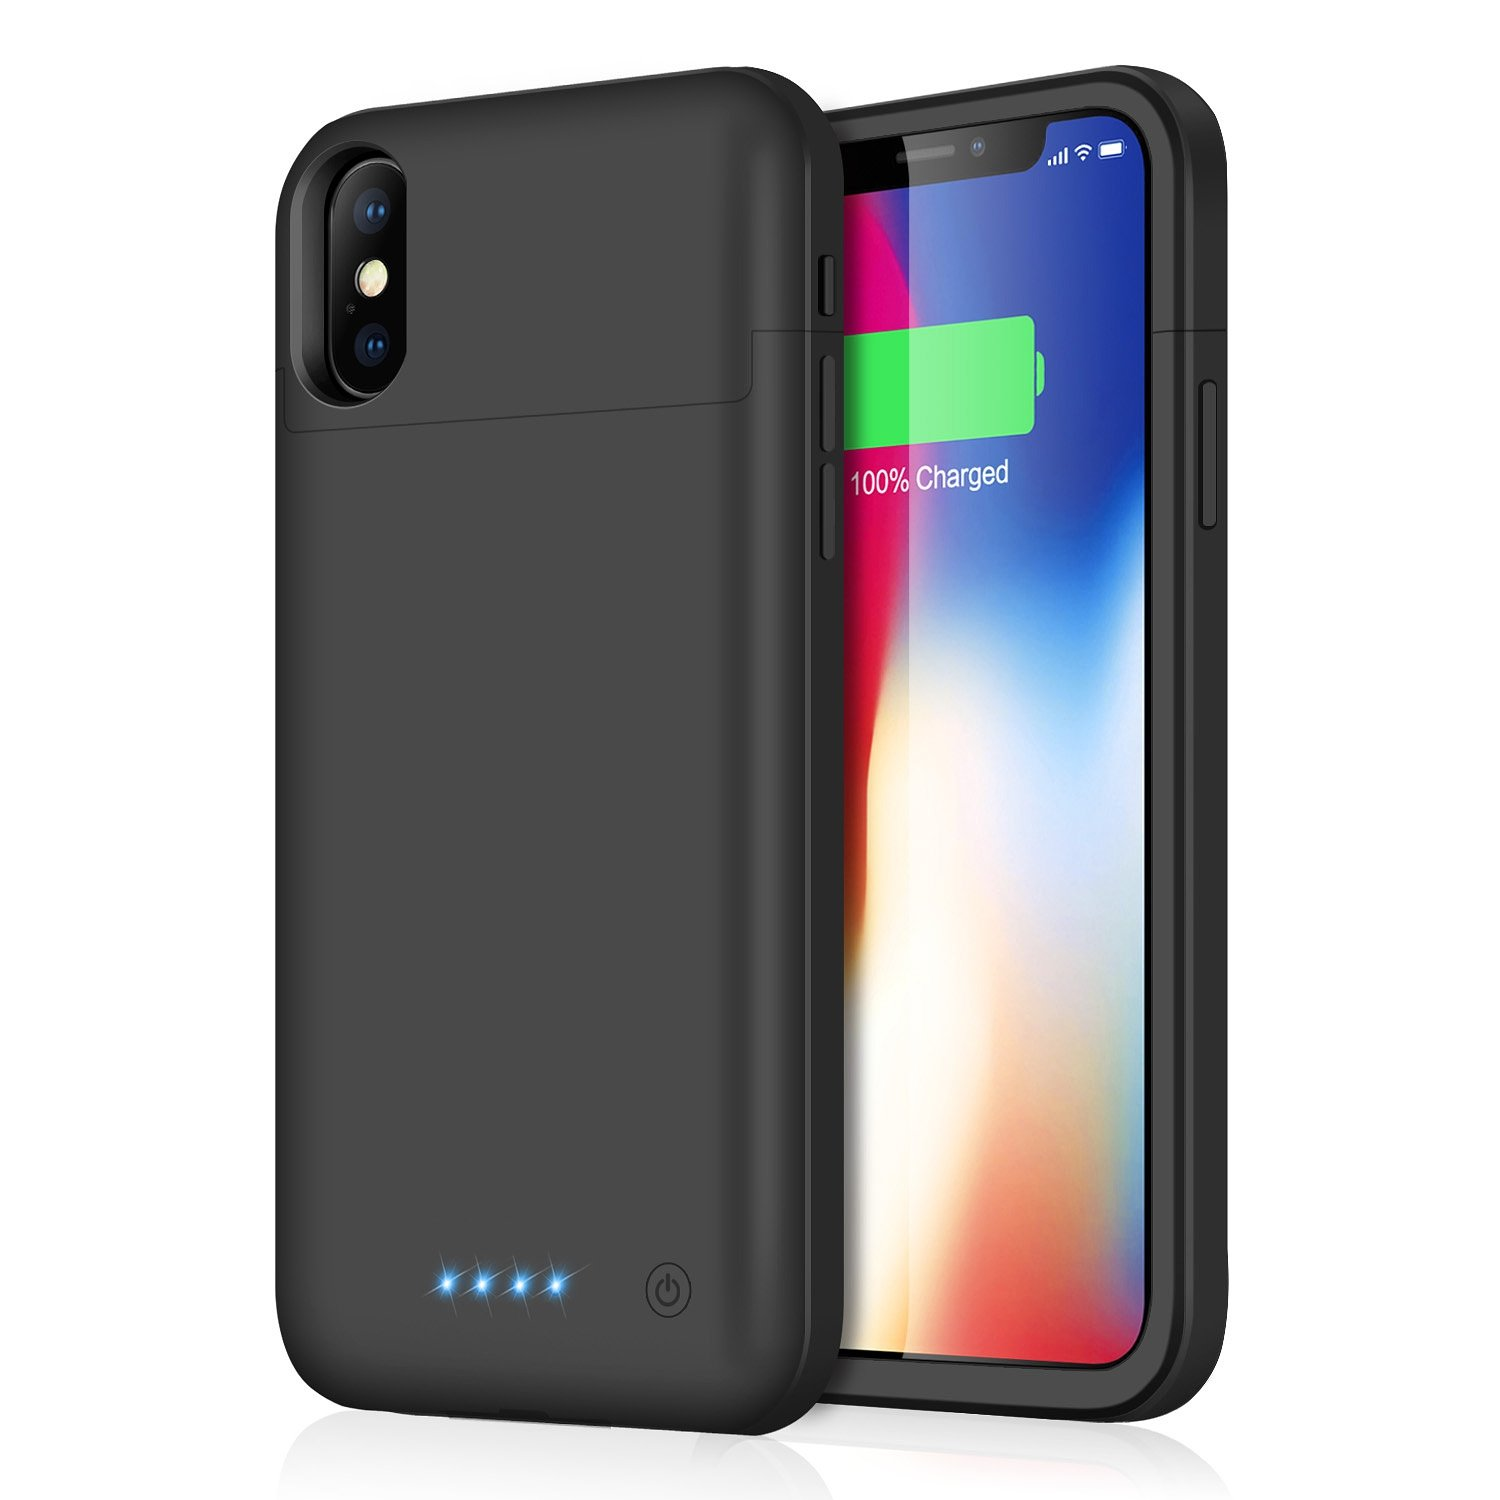 Pxwaxpy iPhone X Battery Case, 5200mAh Rechargeable Charging Case iPhone X Extended Power Charger Case iPhone X iPhone 10 (5.8 inch)- Black